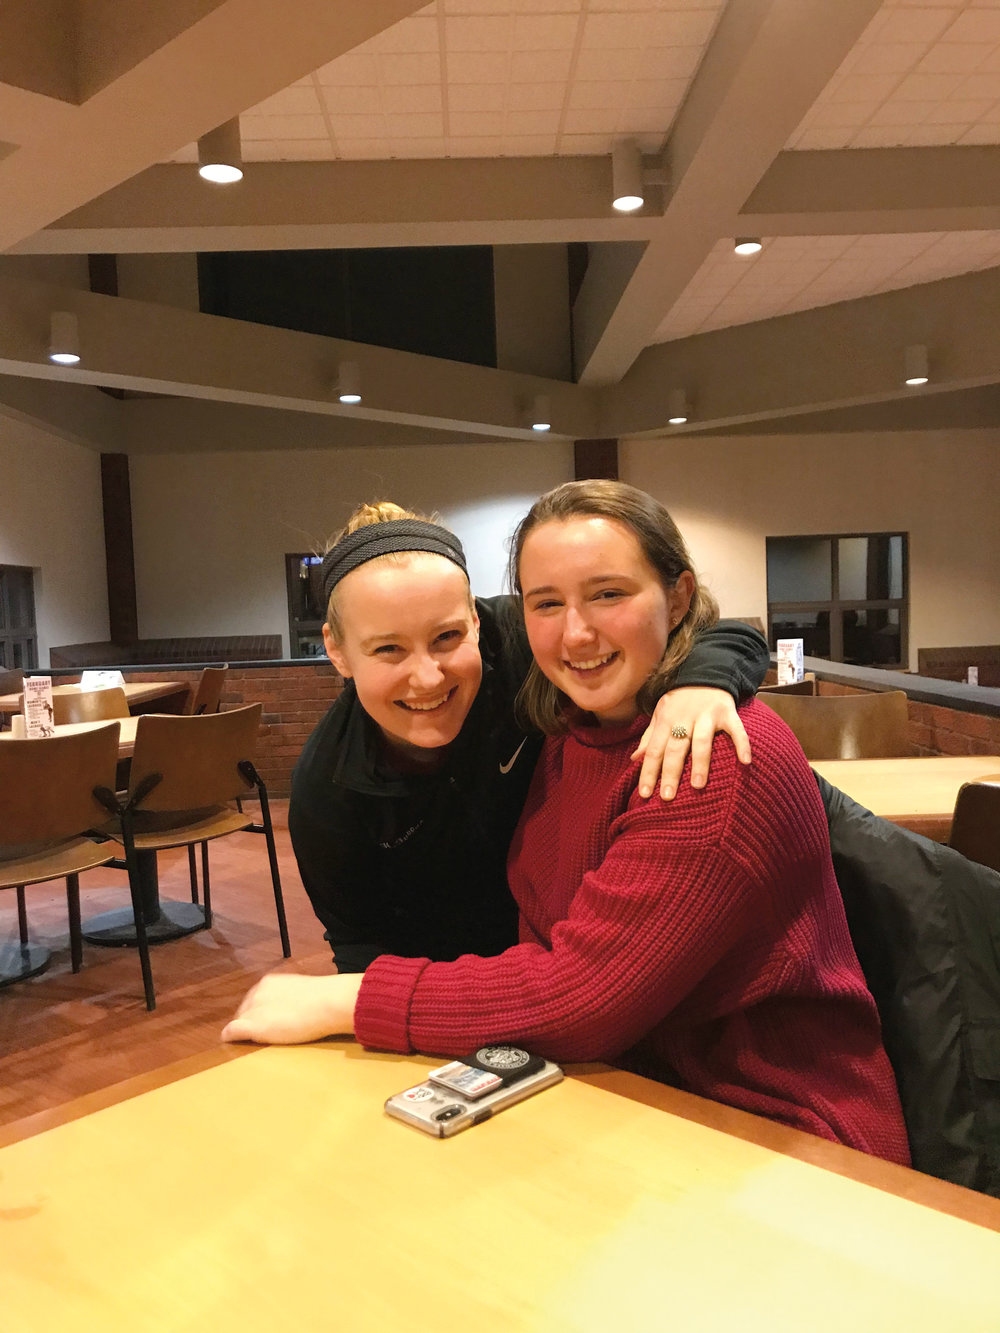 Hamilton, N.Y.  Haley Fuller '18 (l.) and Willa King '18 joined in.